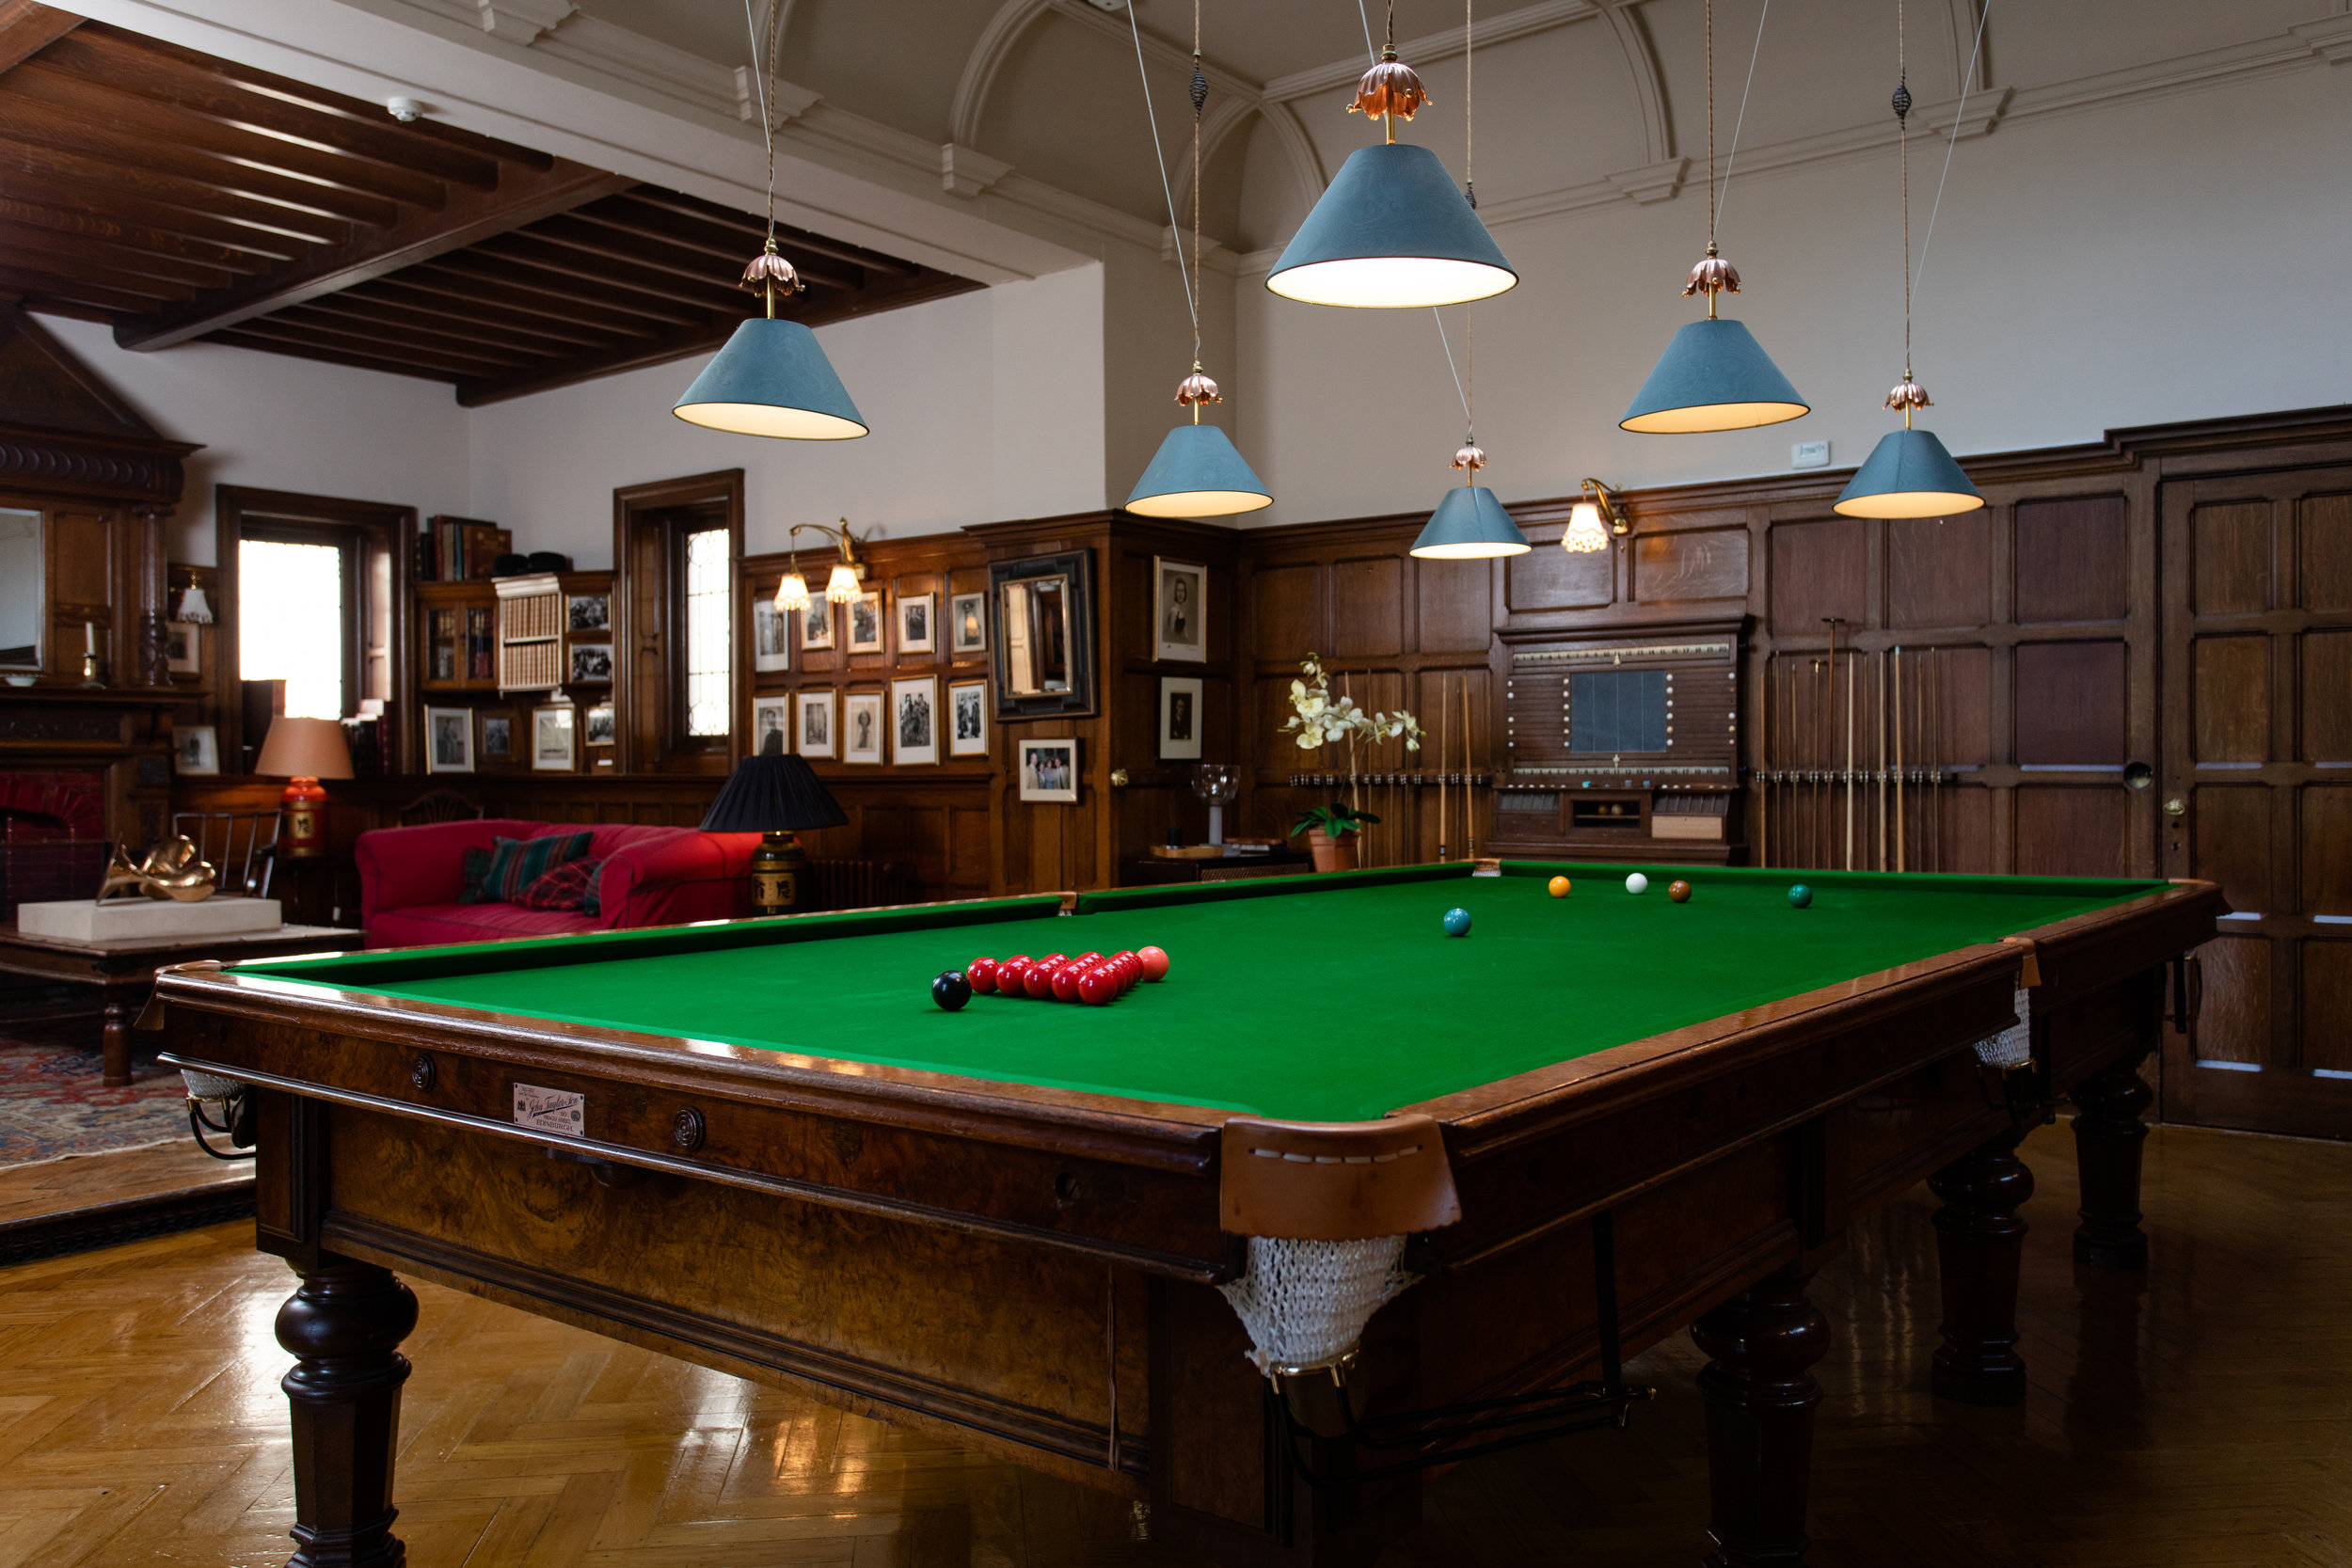 Billiards room - Blue Sky Photography (41).jpg